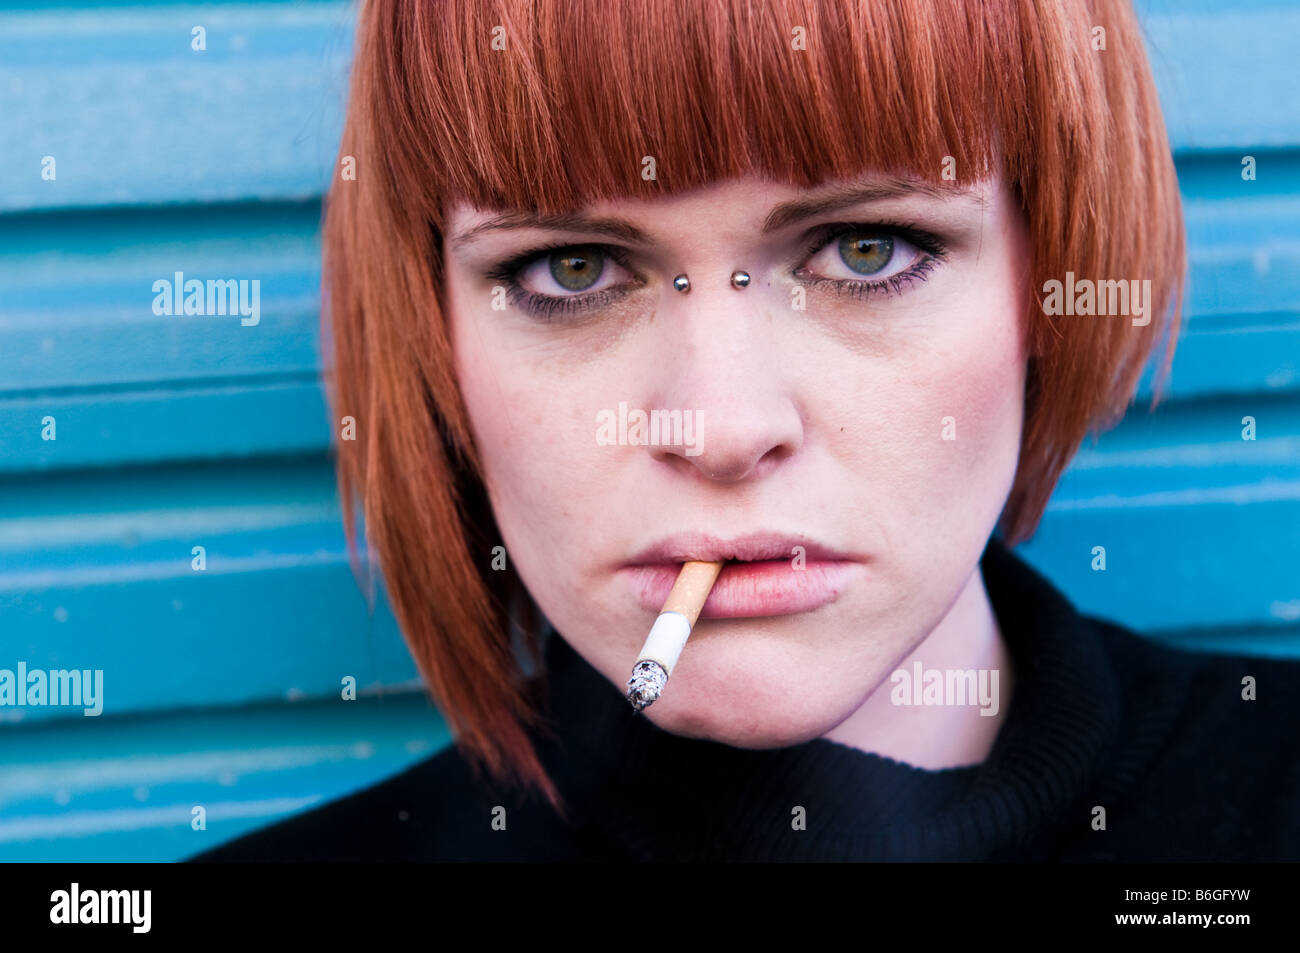 Young red haired irish girl woman with a cigarette in her mouth, a piercing in the bridge of her nose looking moody Stock Photo